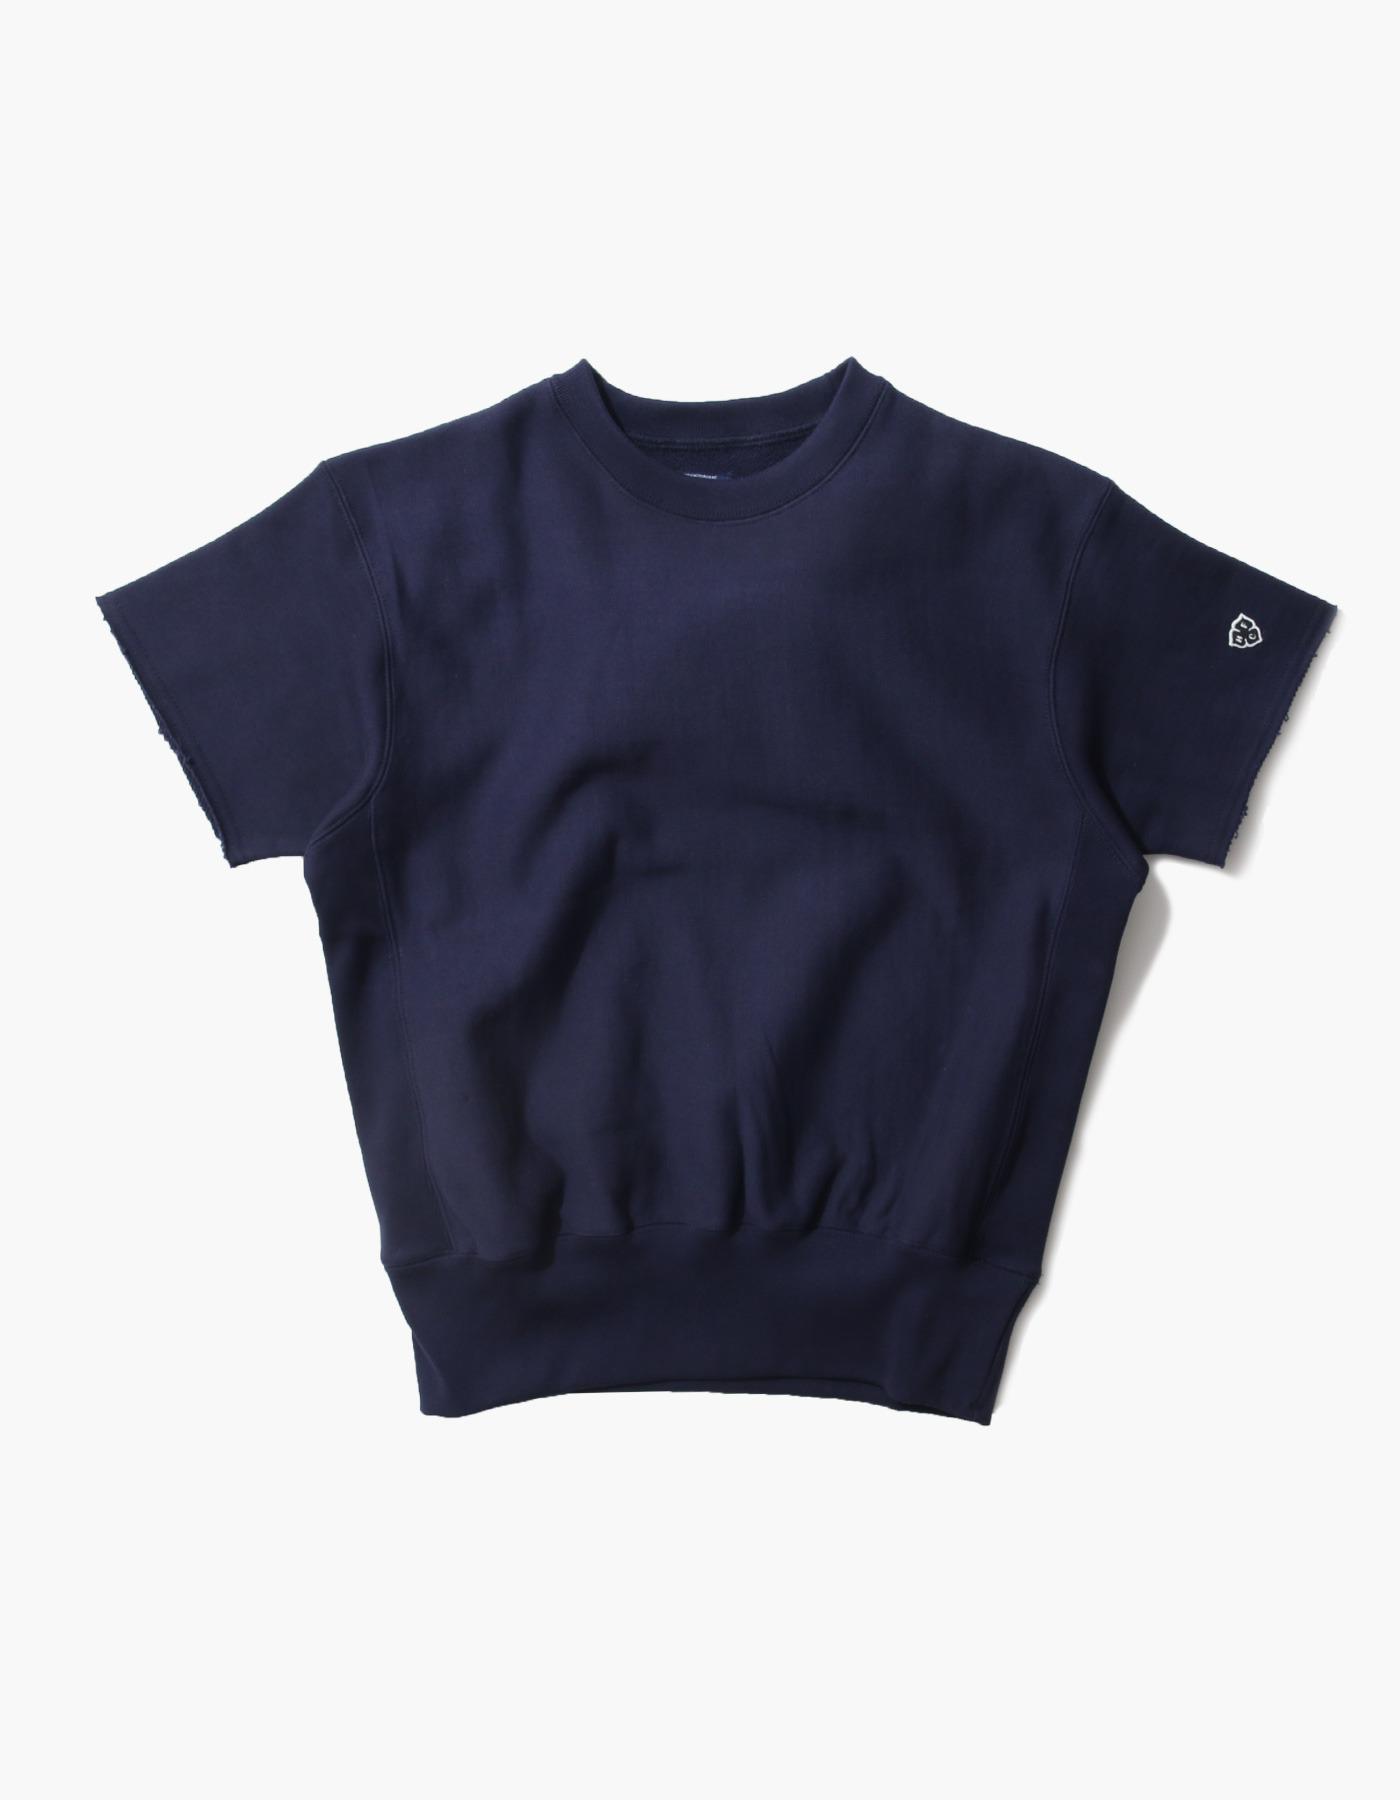 321 GYM CREWNECK HALF SLEEVE / NAVY